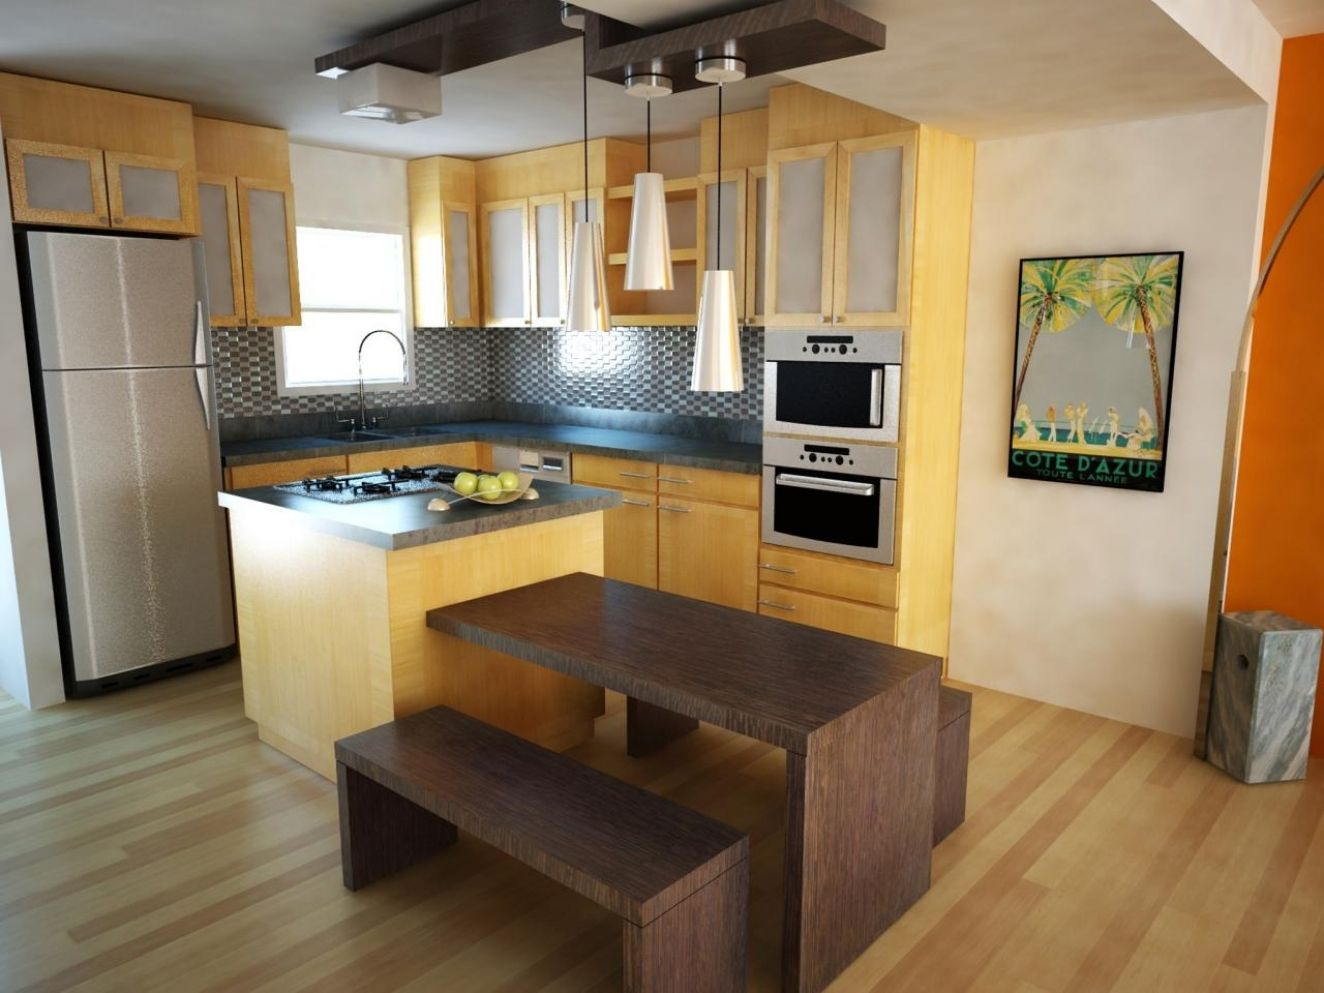 Kitchen layout designs for small spaces kitchen cabinet